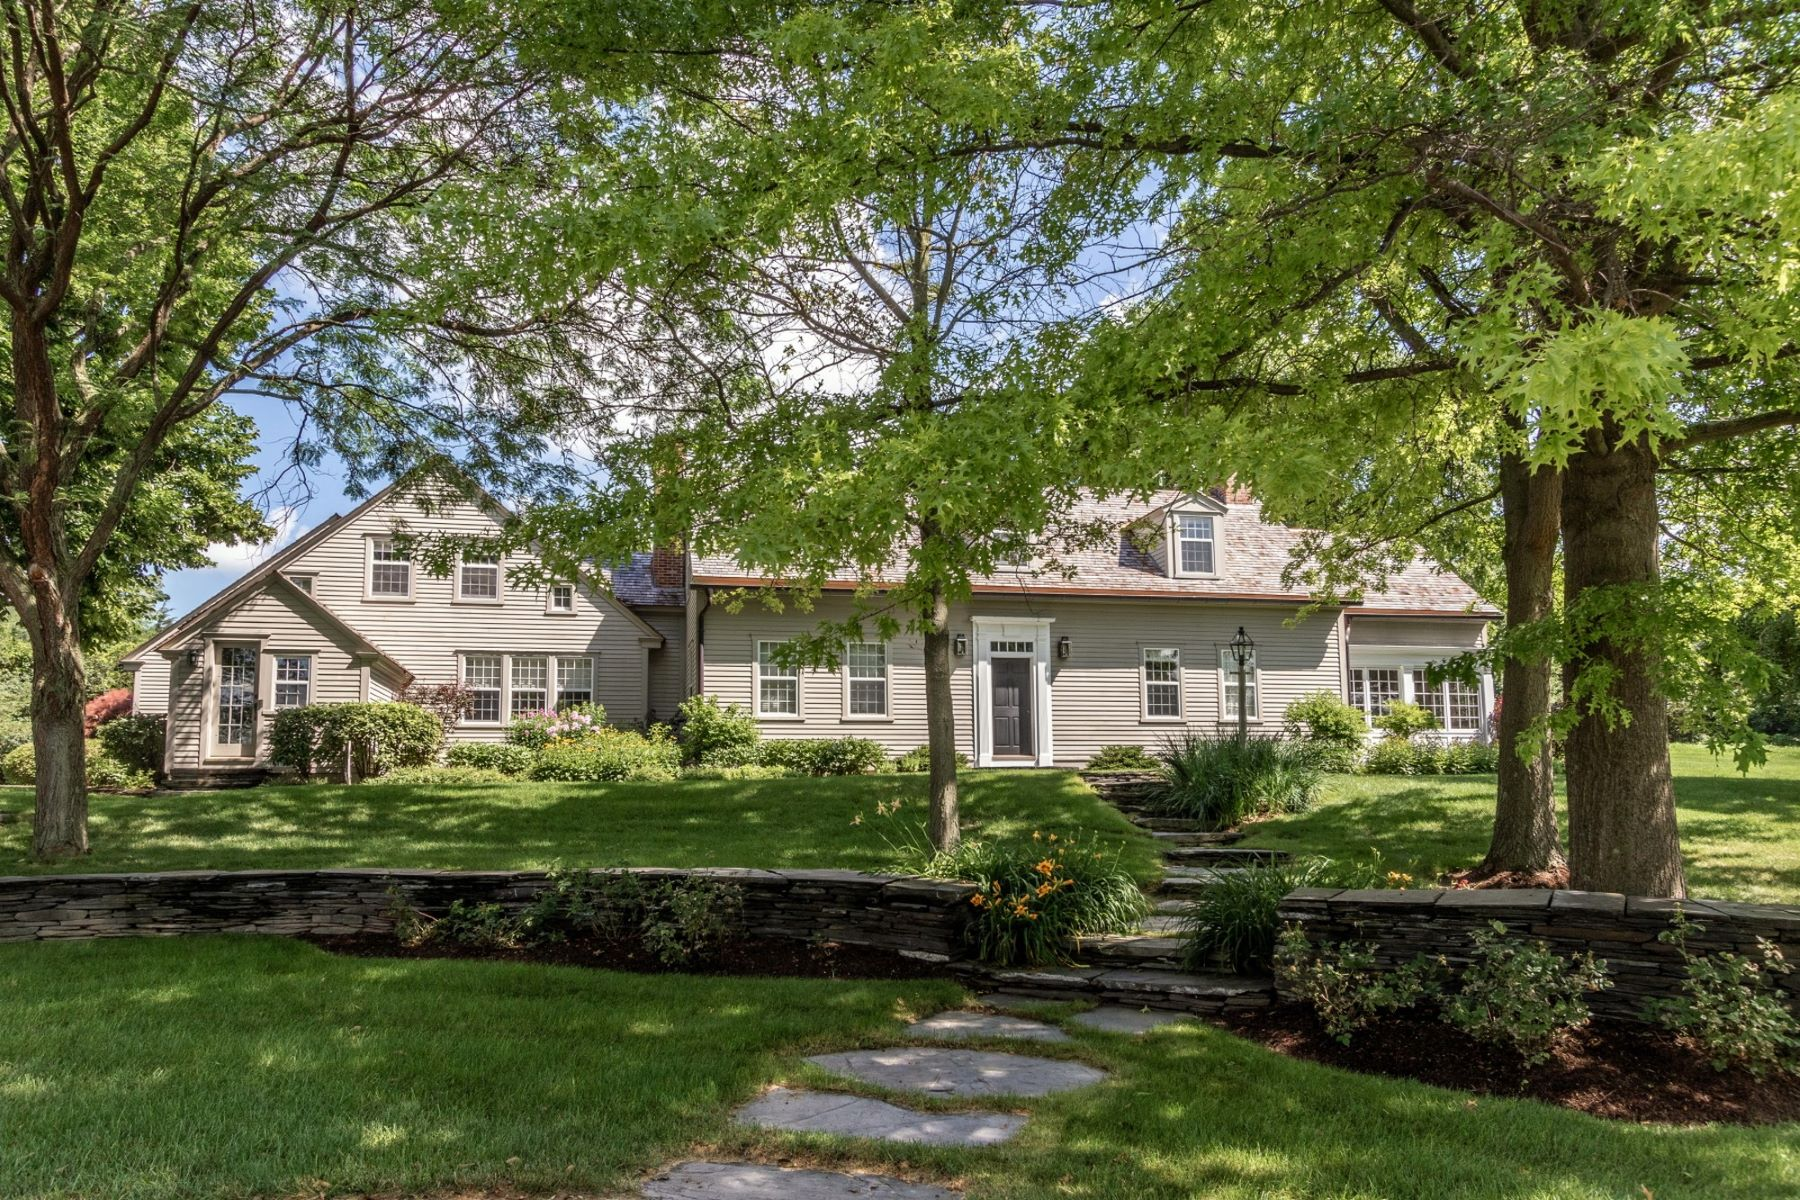 Single Family Homes for Sale at Classic New England Cape 7133 Spear Street Charlotte, Vermont 05445 United States